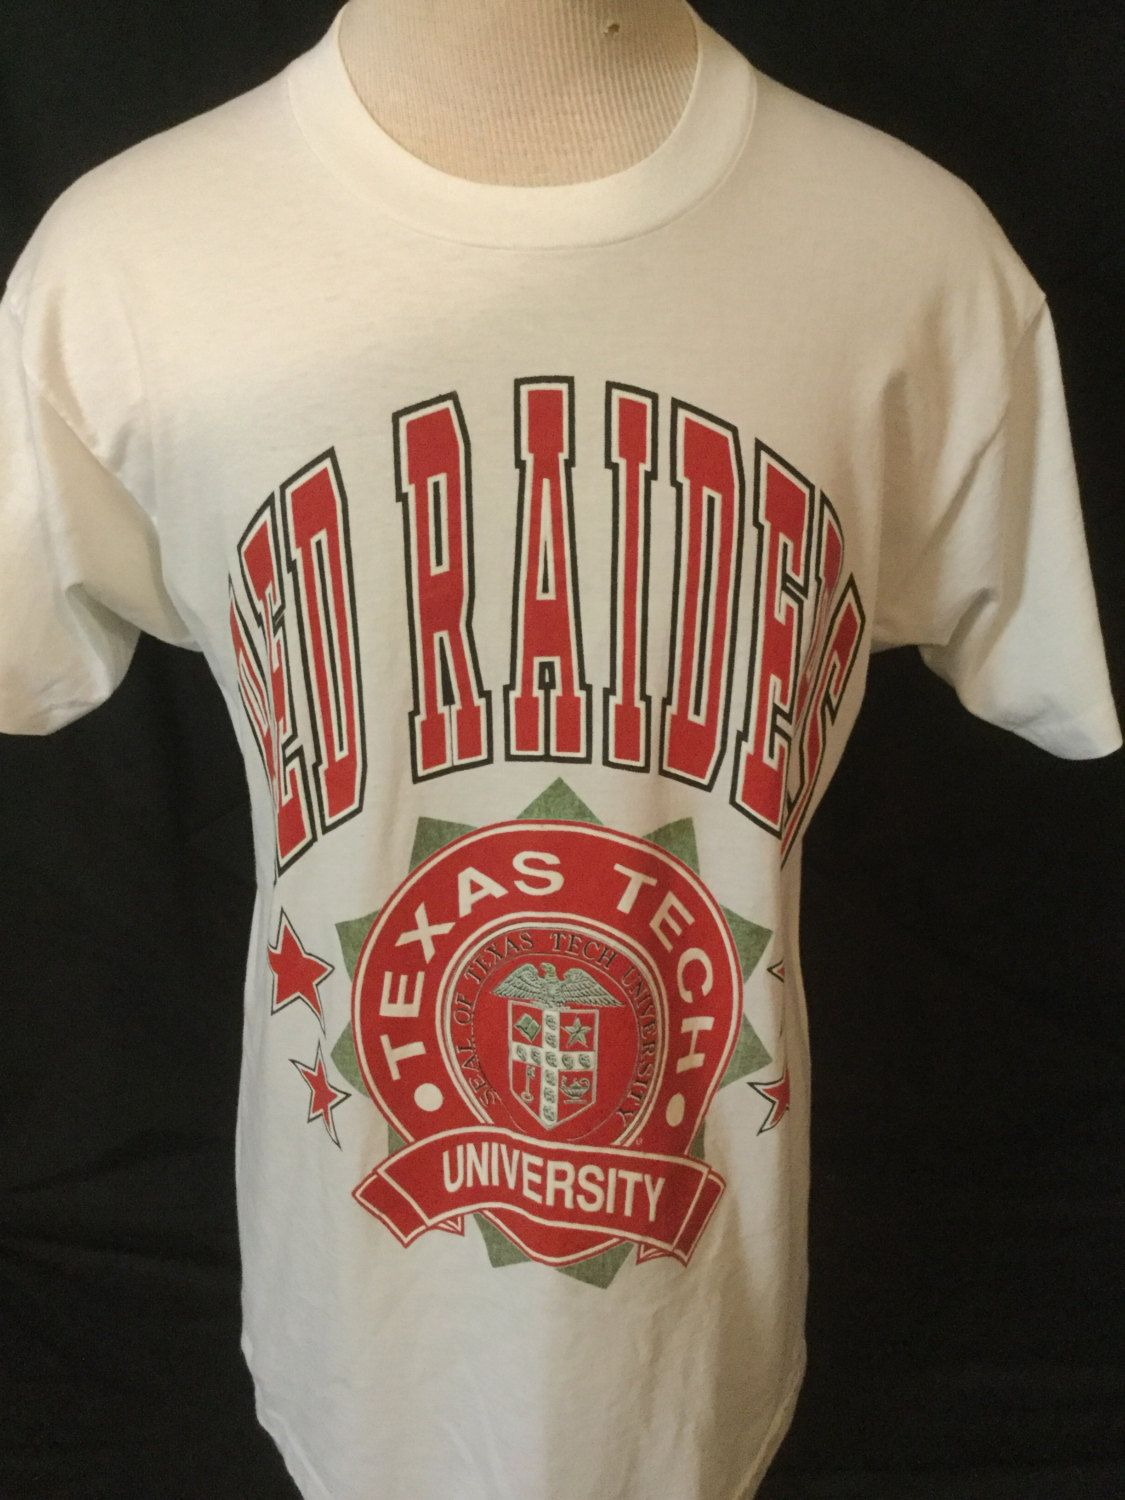 Vintage 1990 S Texas Tech Red Raiders 50 50 Awesome Etsy Texas Tech Red Raiders Cool T Shirts Red Raiders [ 1500 x 1125 Pixel ]